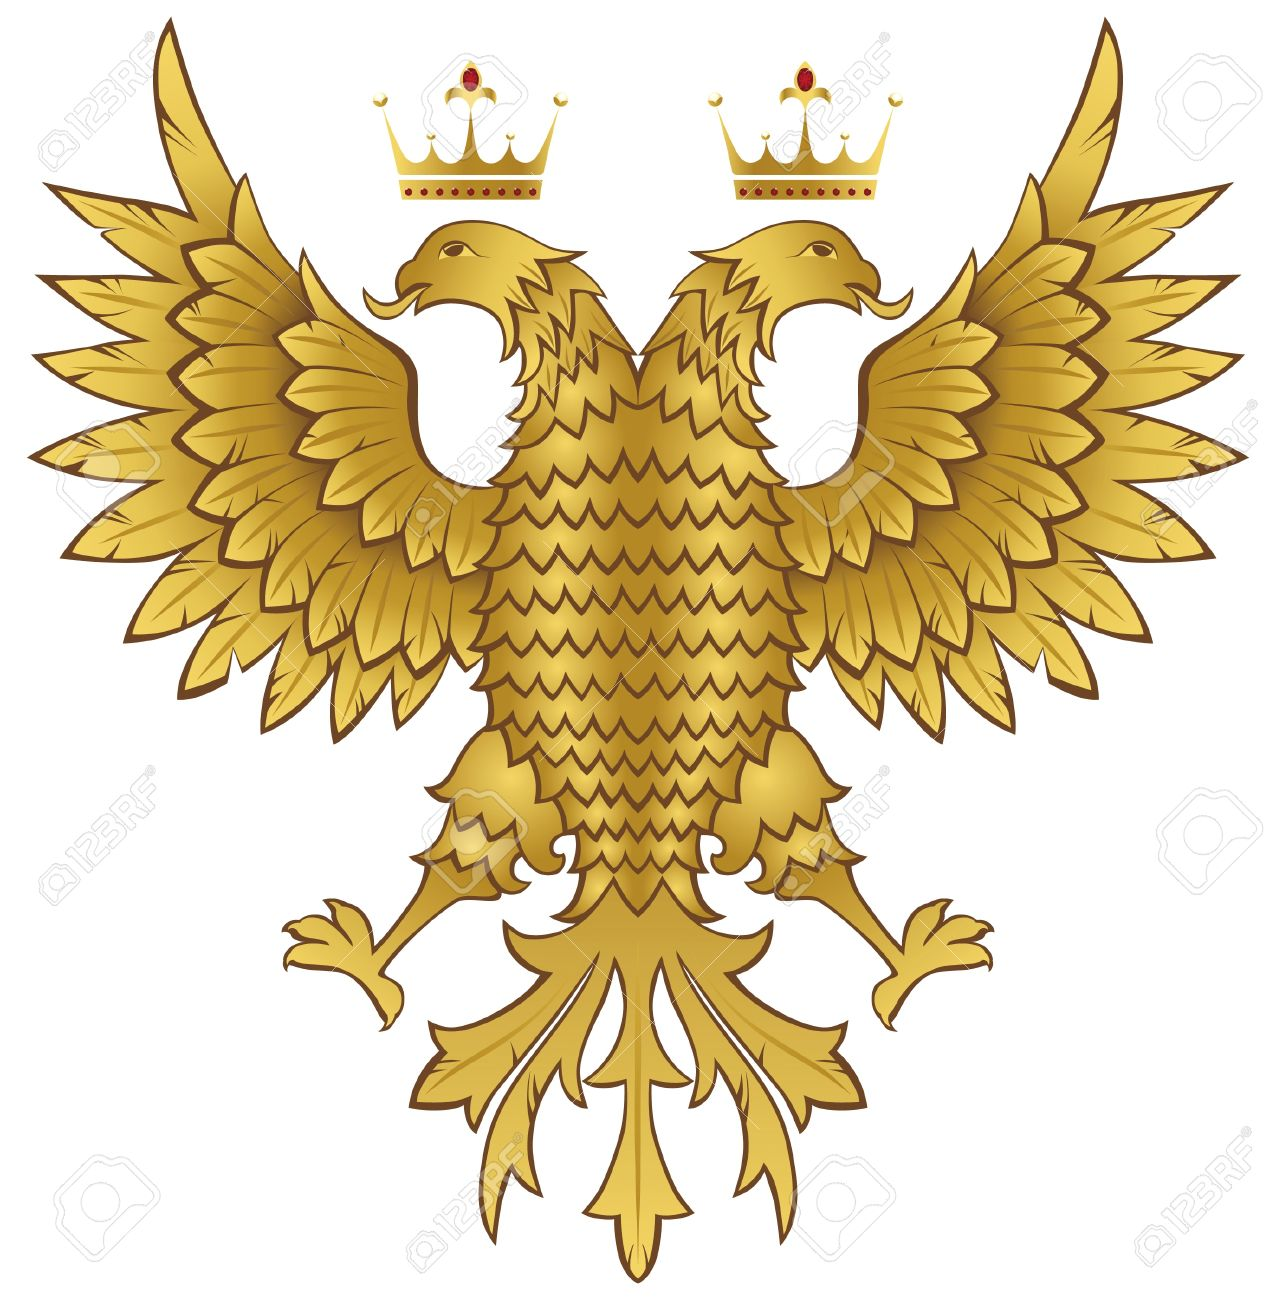 Double Headed Eagle Royalty Free Cliparts, Vectors, And Stock.